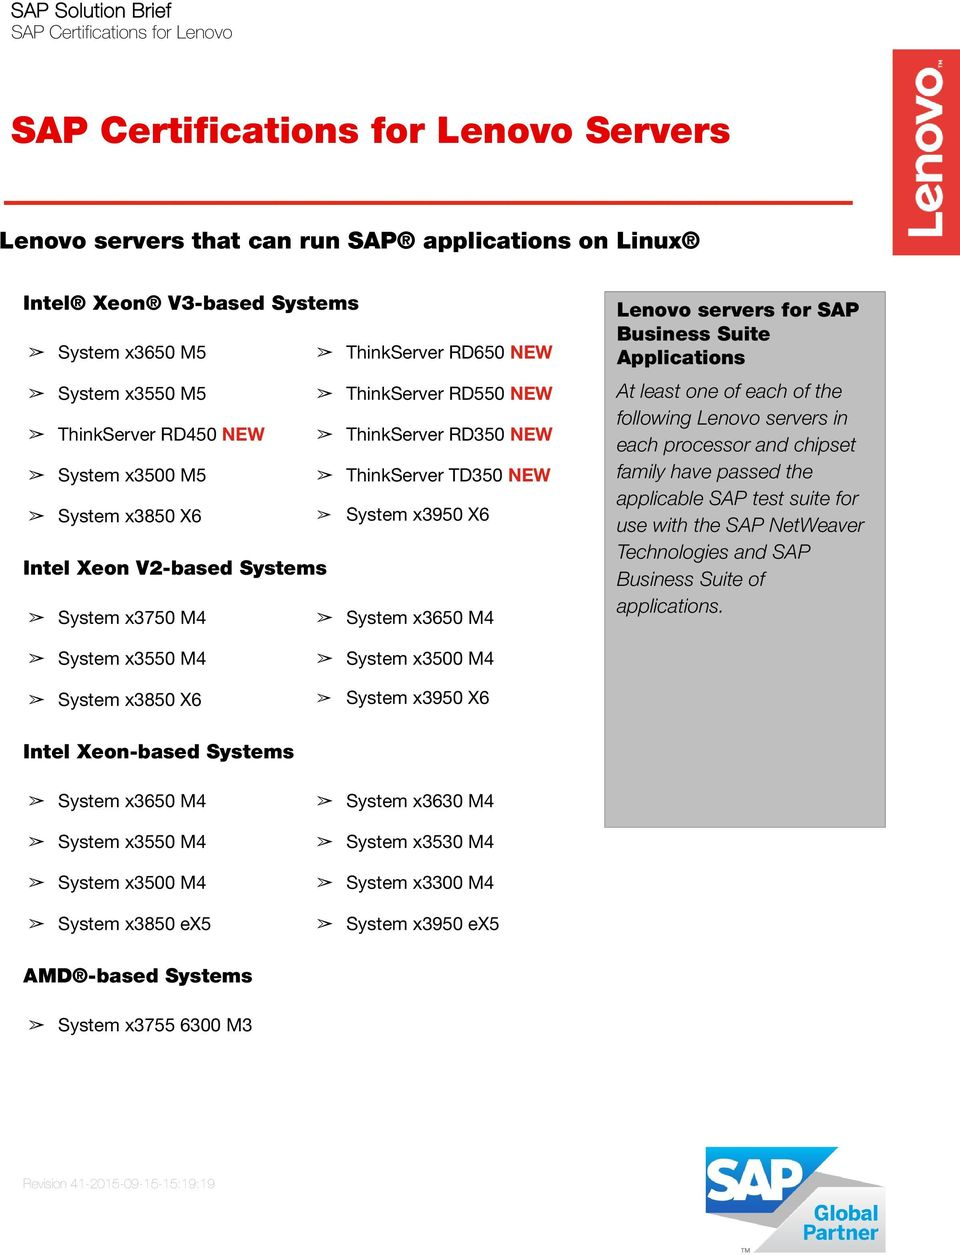 SAP Business Suite Applications following Lenovo servers in use with the SAP NetWeaver Technologies and SAP Business Suite of applications.